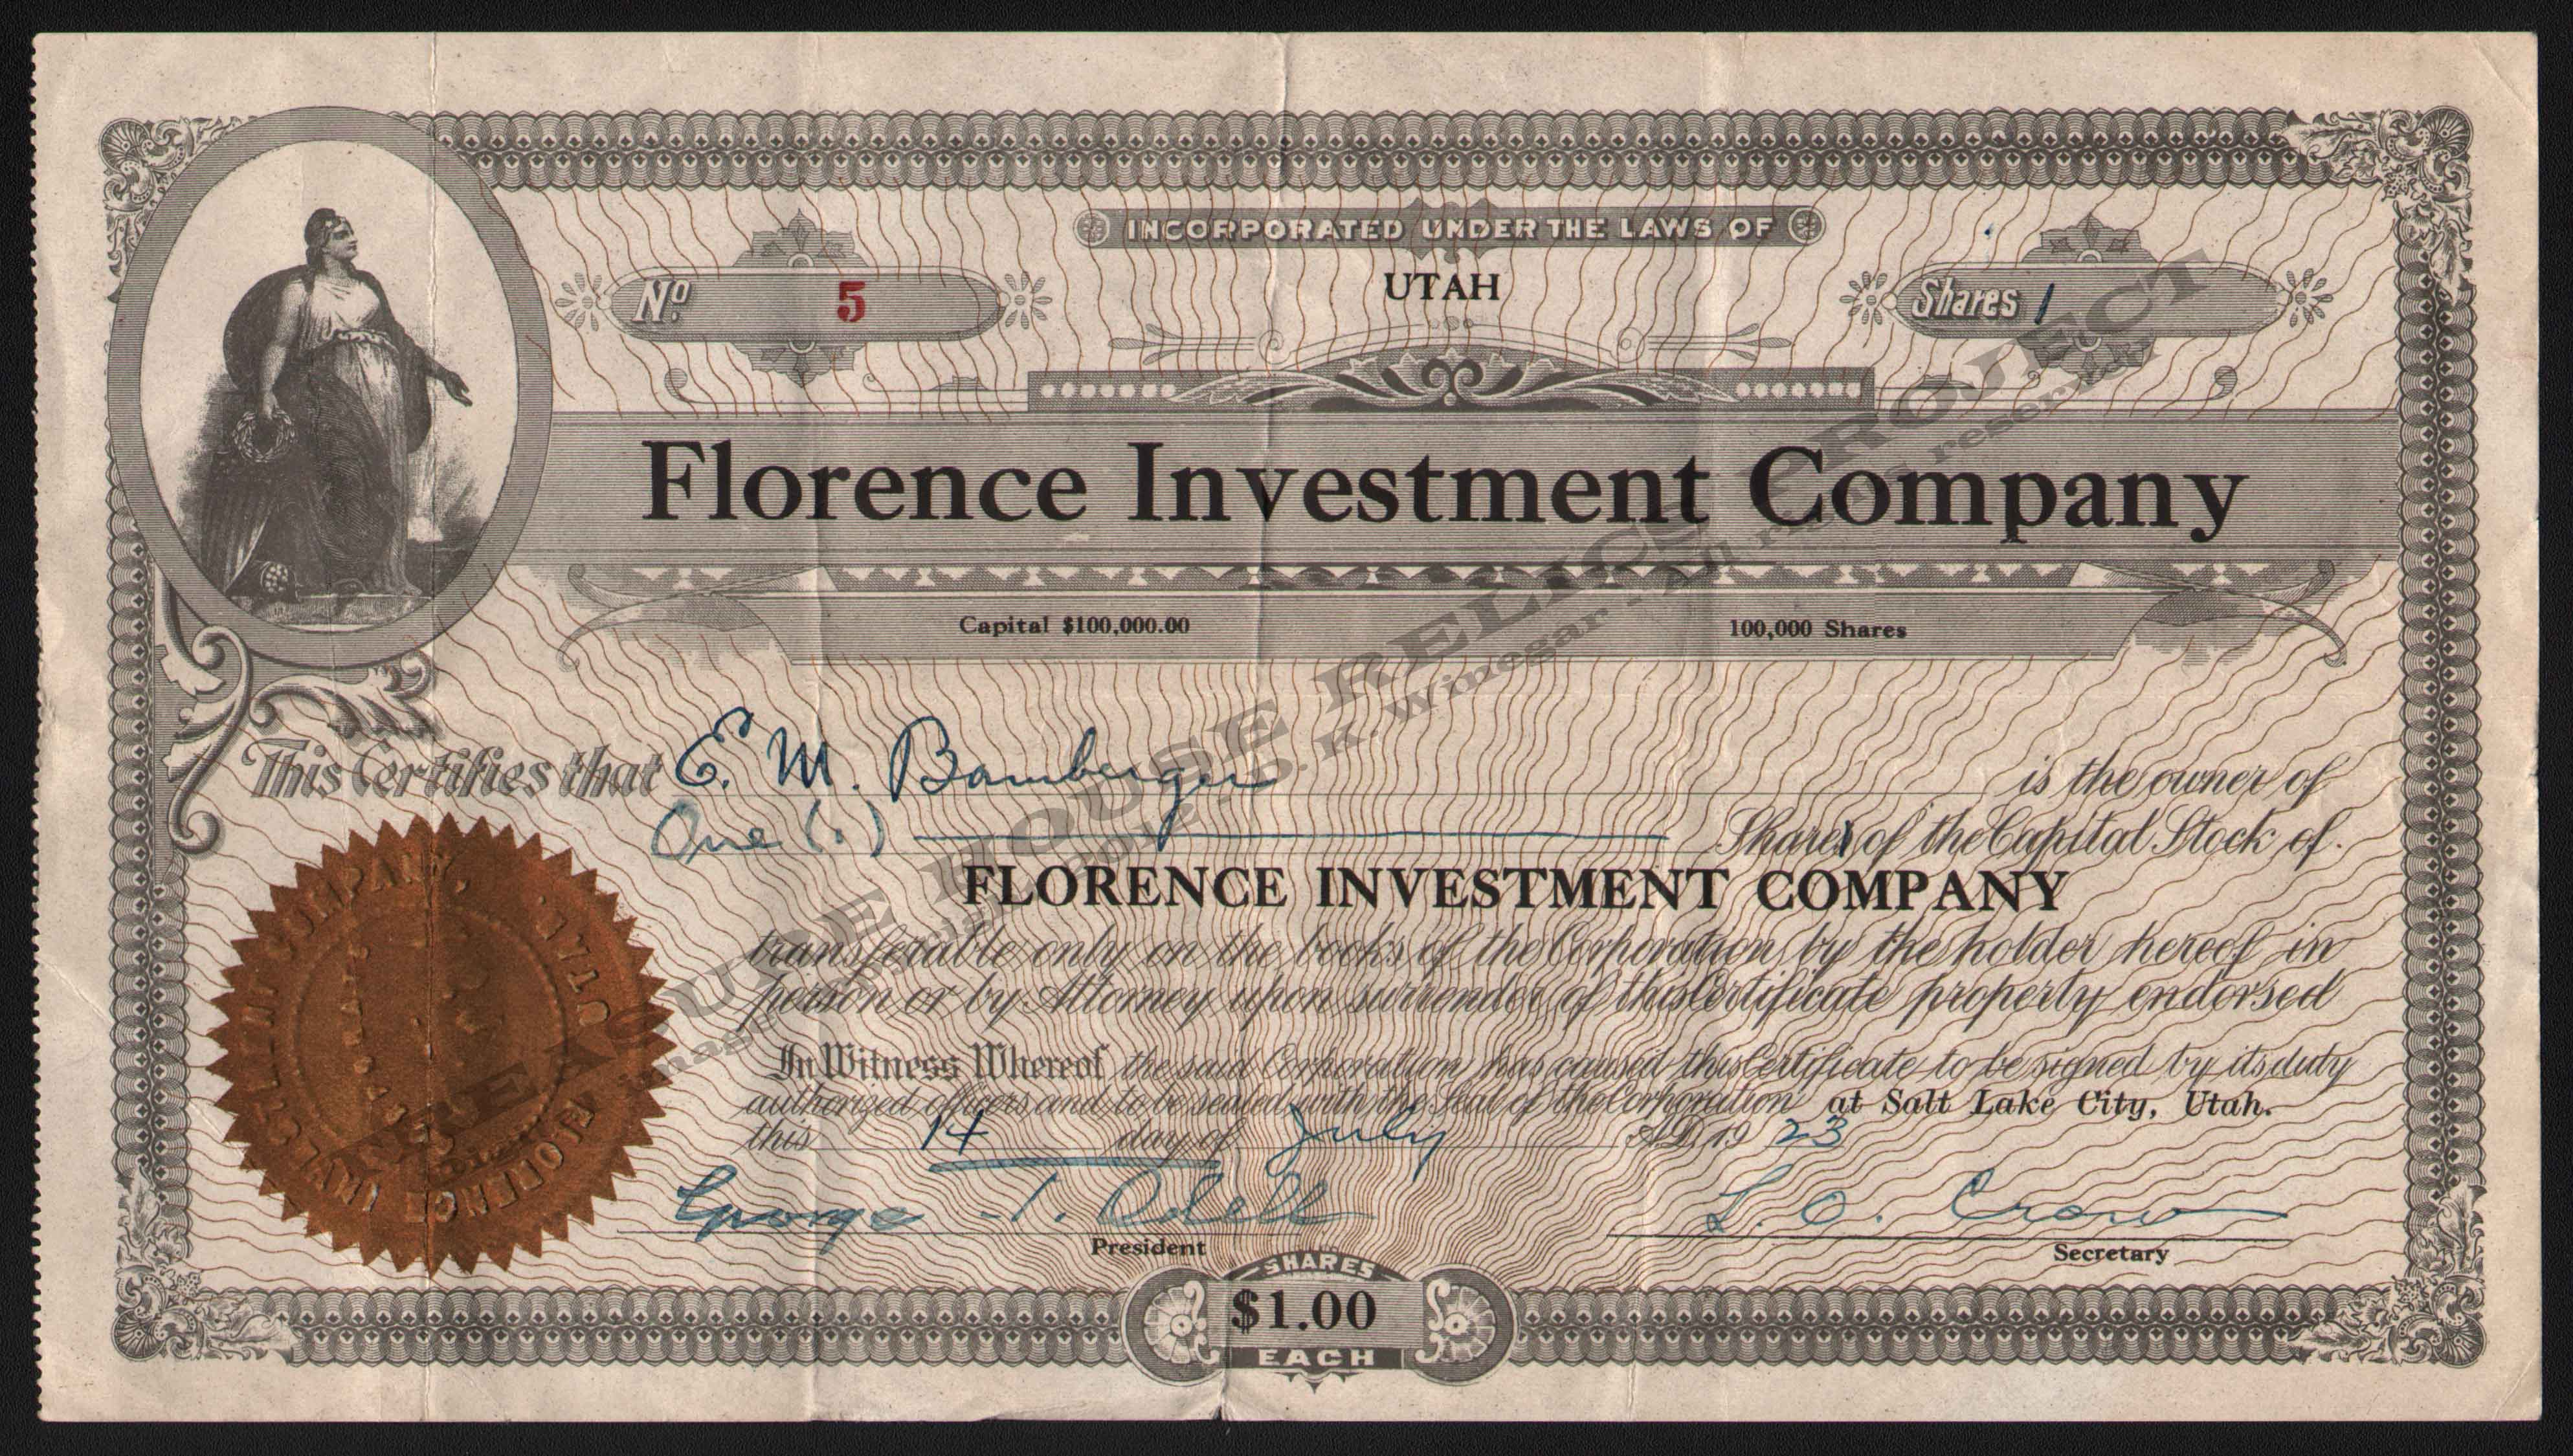 LETTERHEAD/FLORENCE_INVESTMENT_COMPANY_5_1923_BAM_400_CROP_EMBOSS.jpg